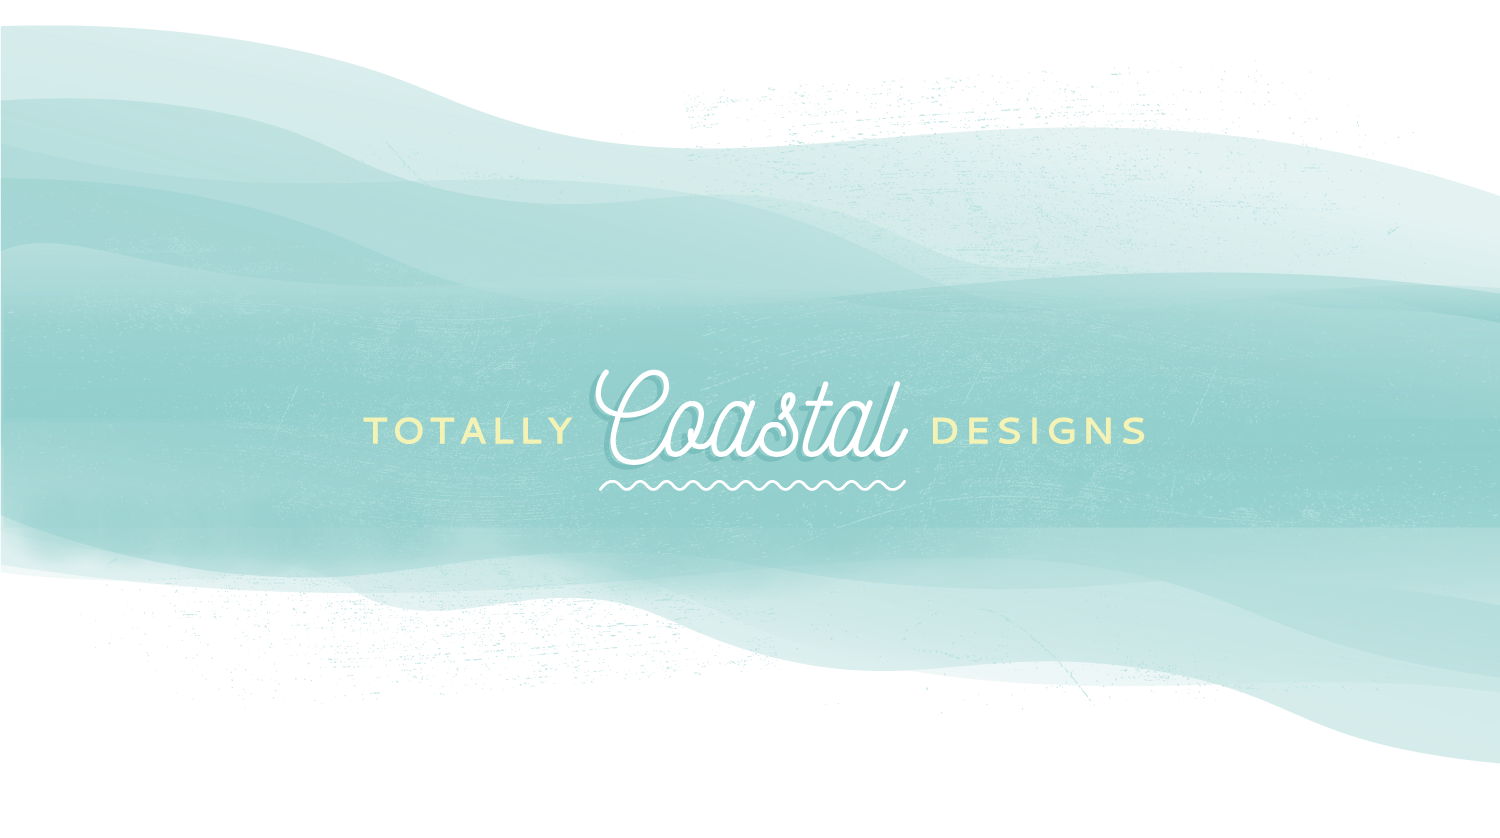 Totally Coastal Designs